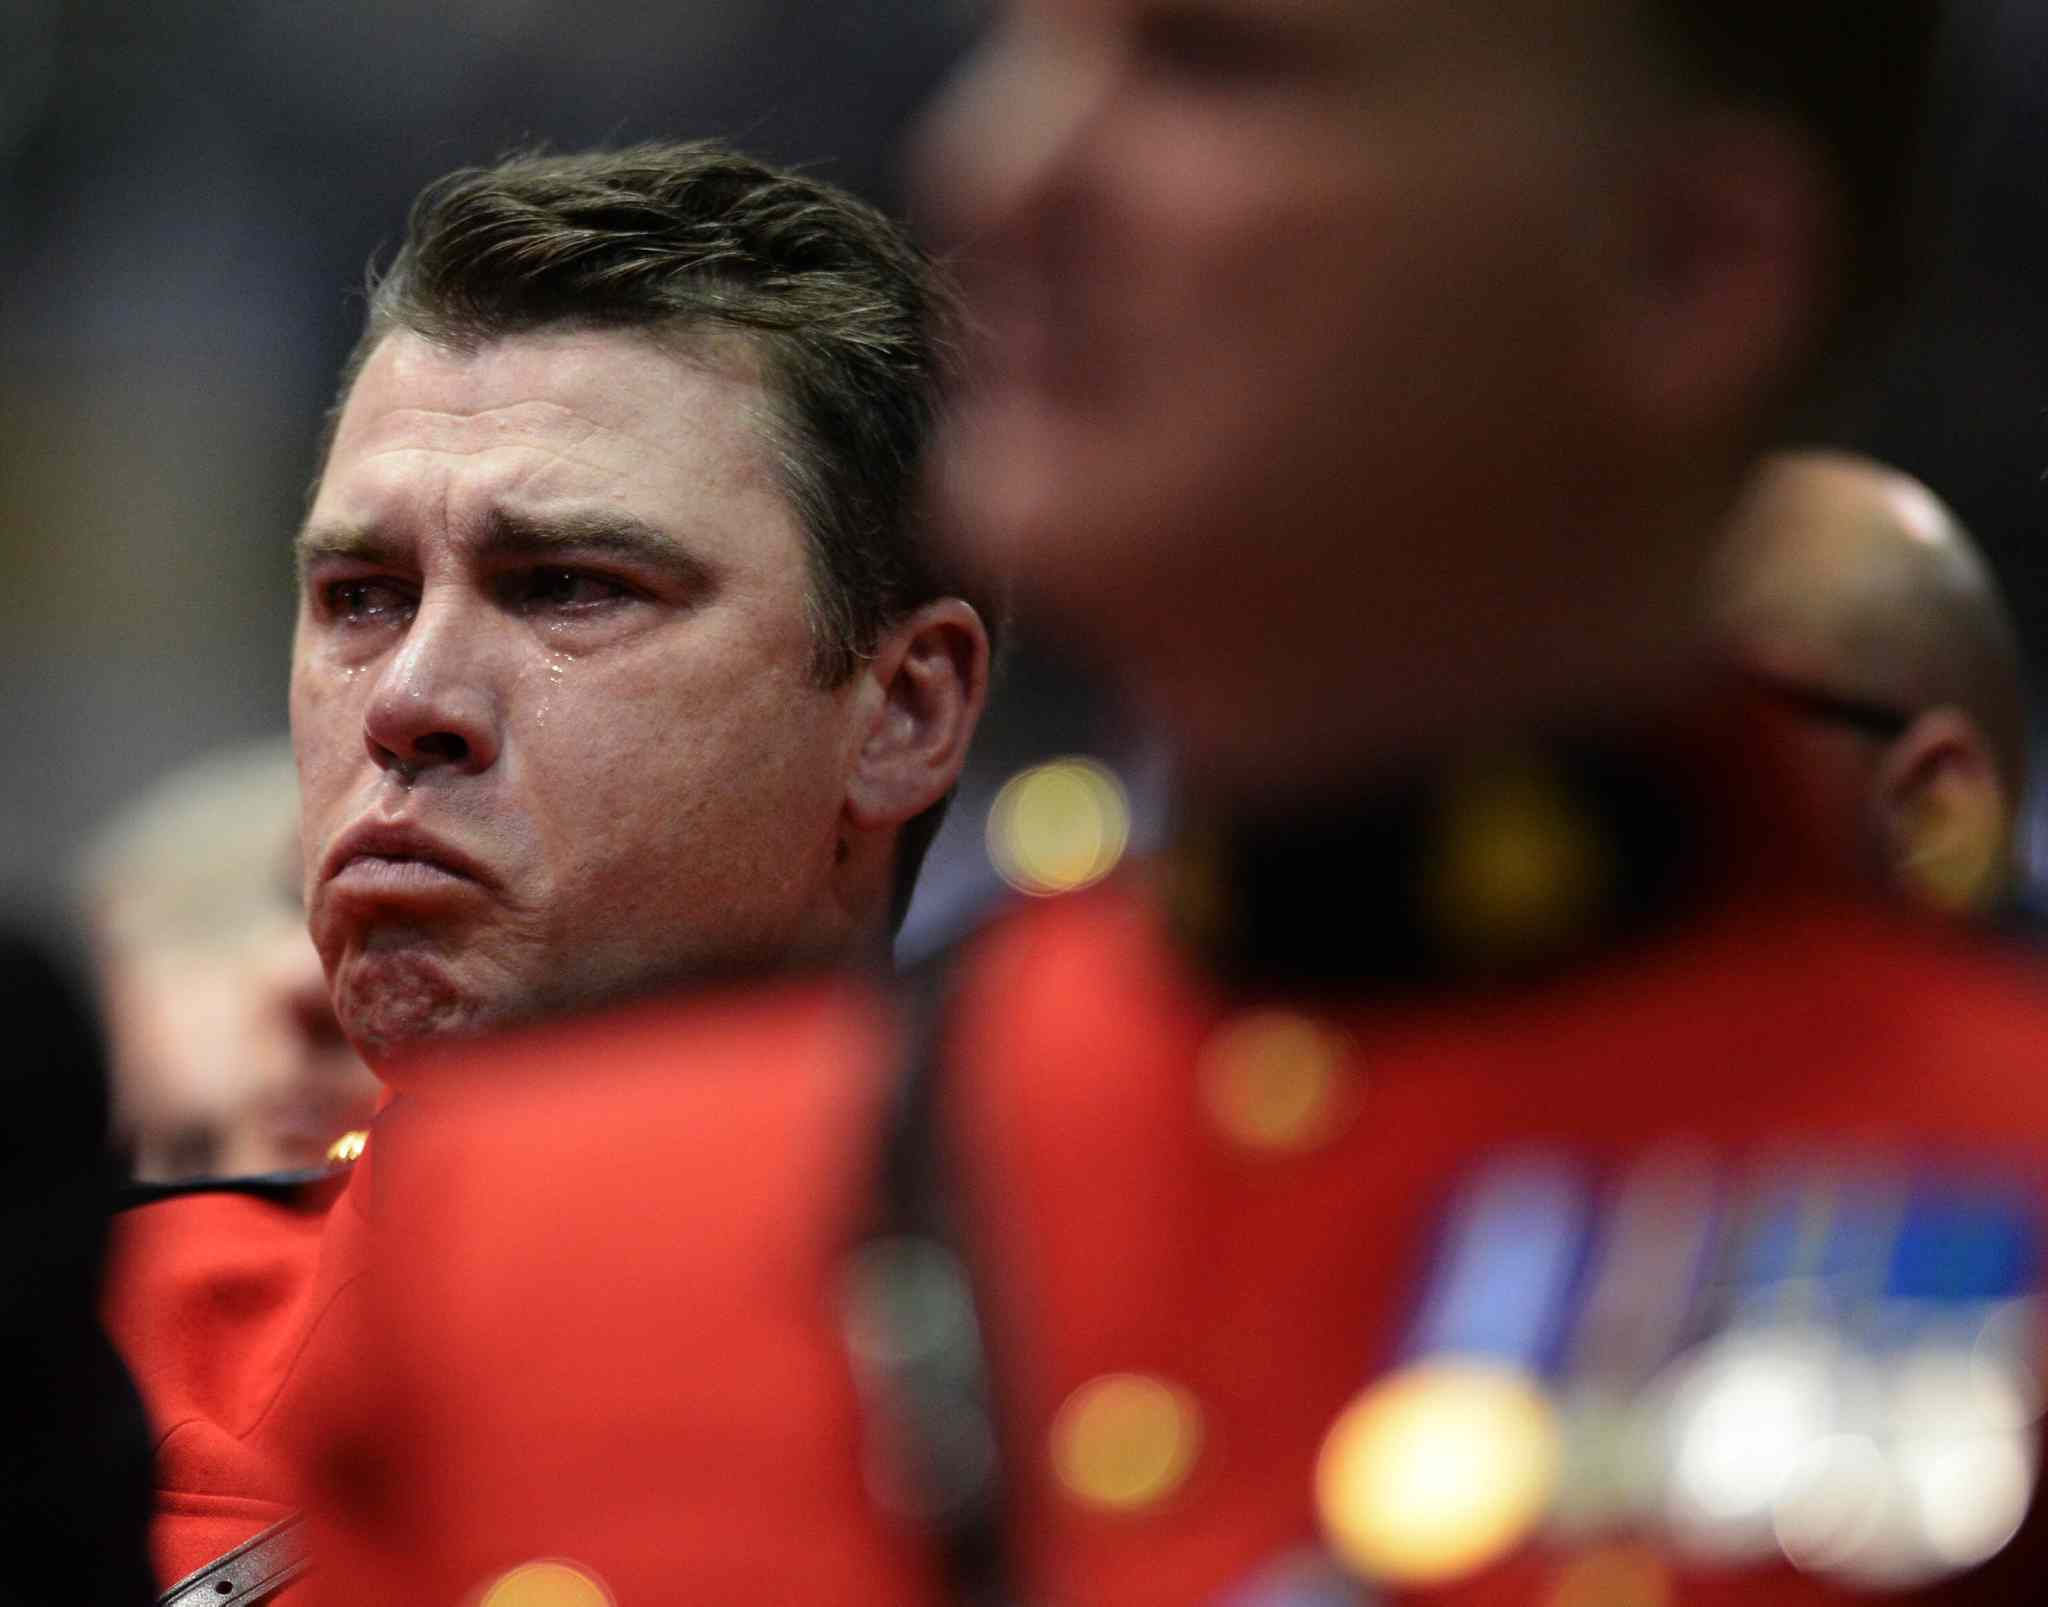 An RCMP officer tries to contain his emotions at the RCMP regimental funeral on Tuesday